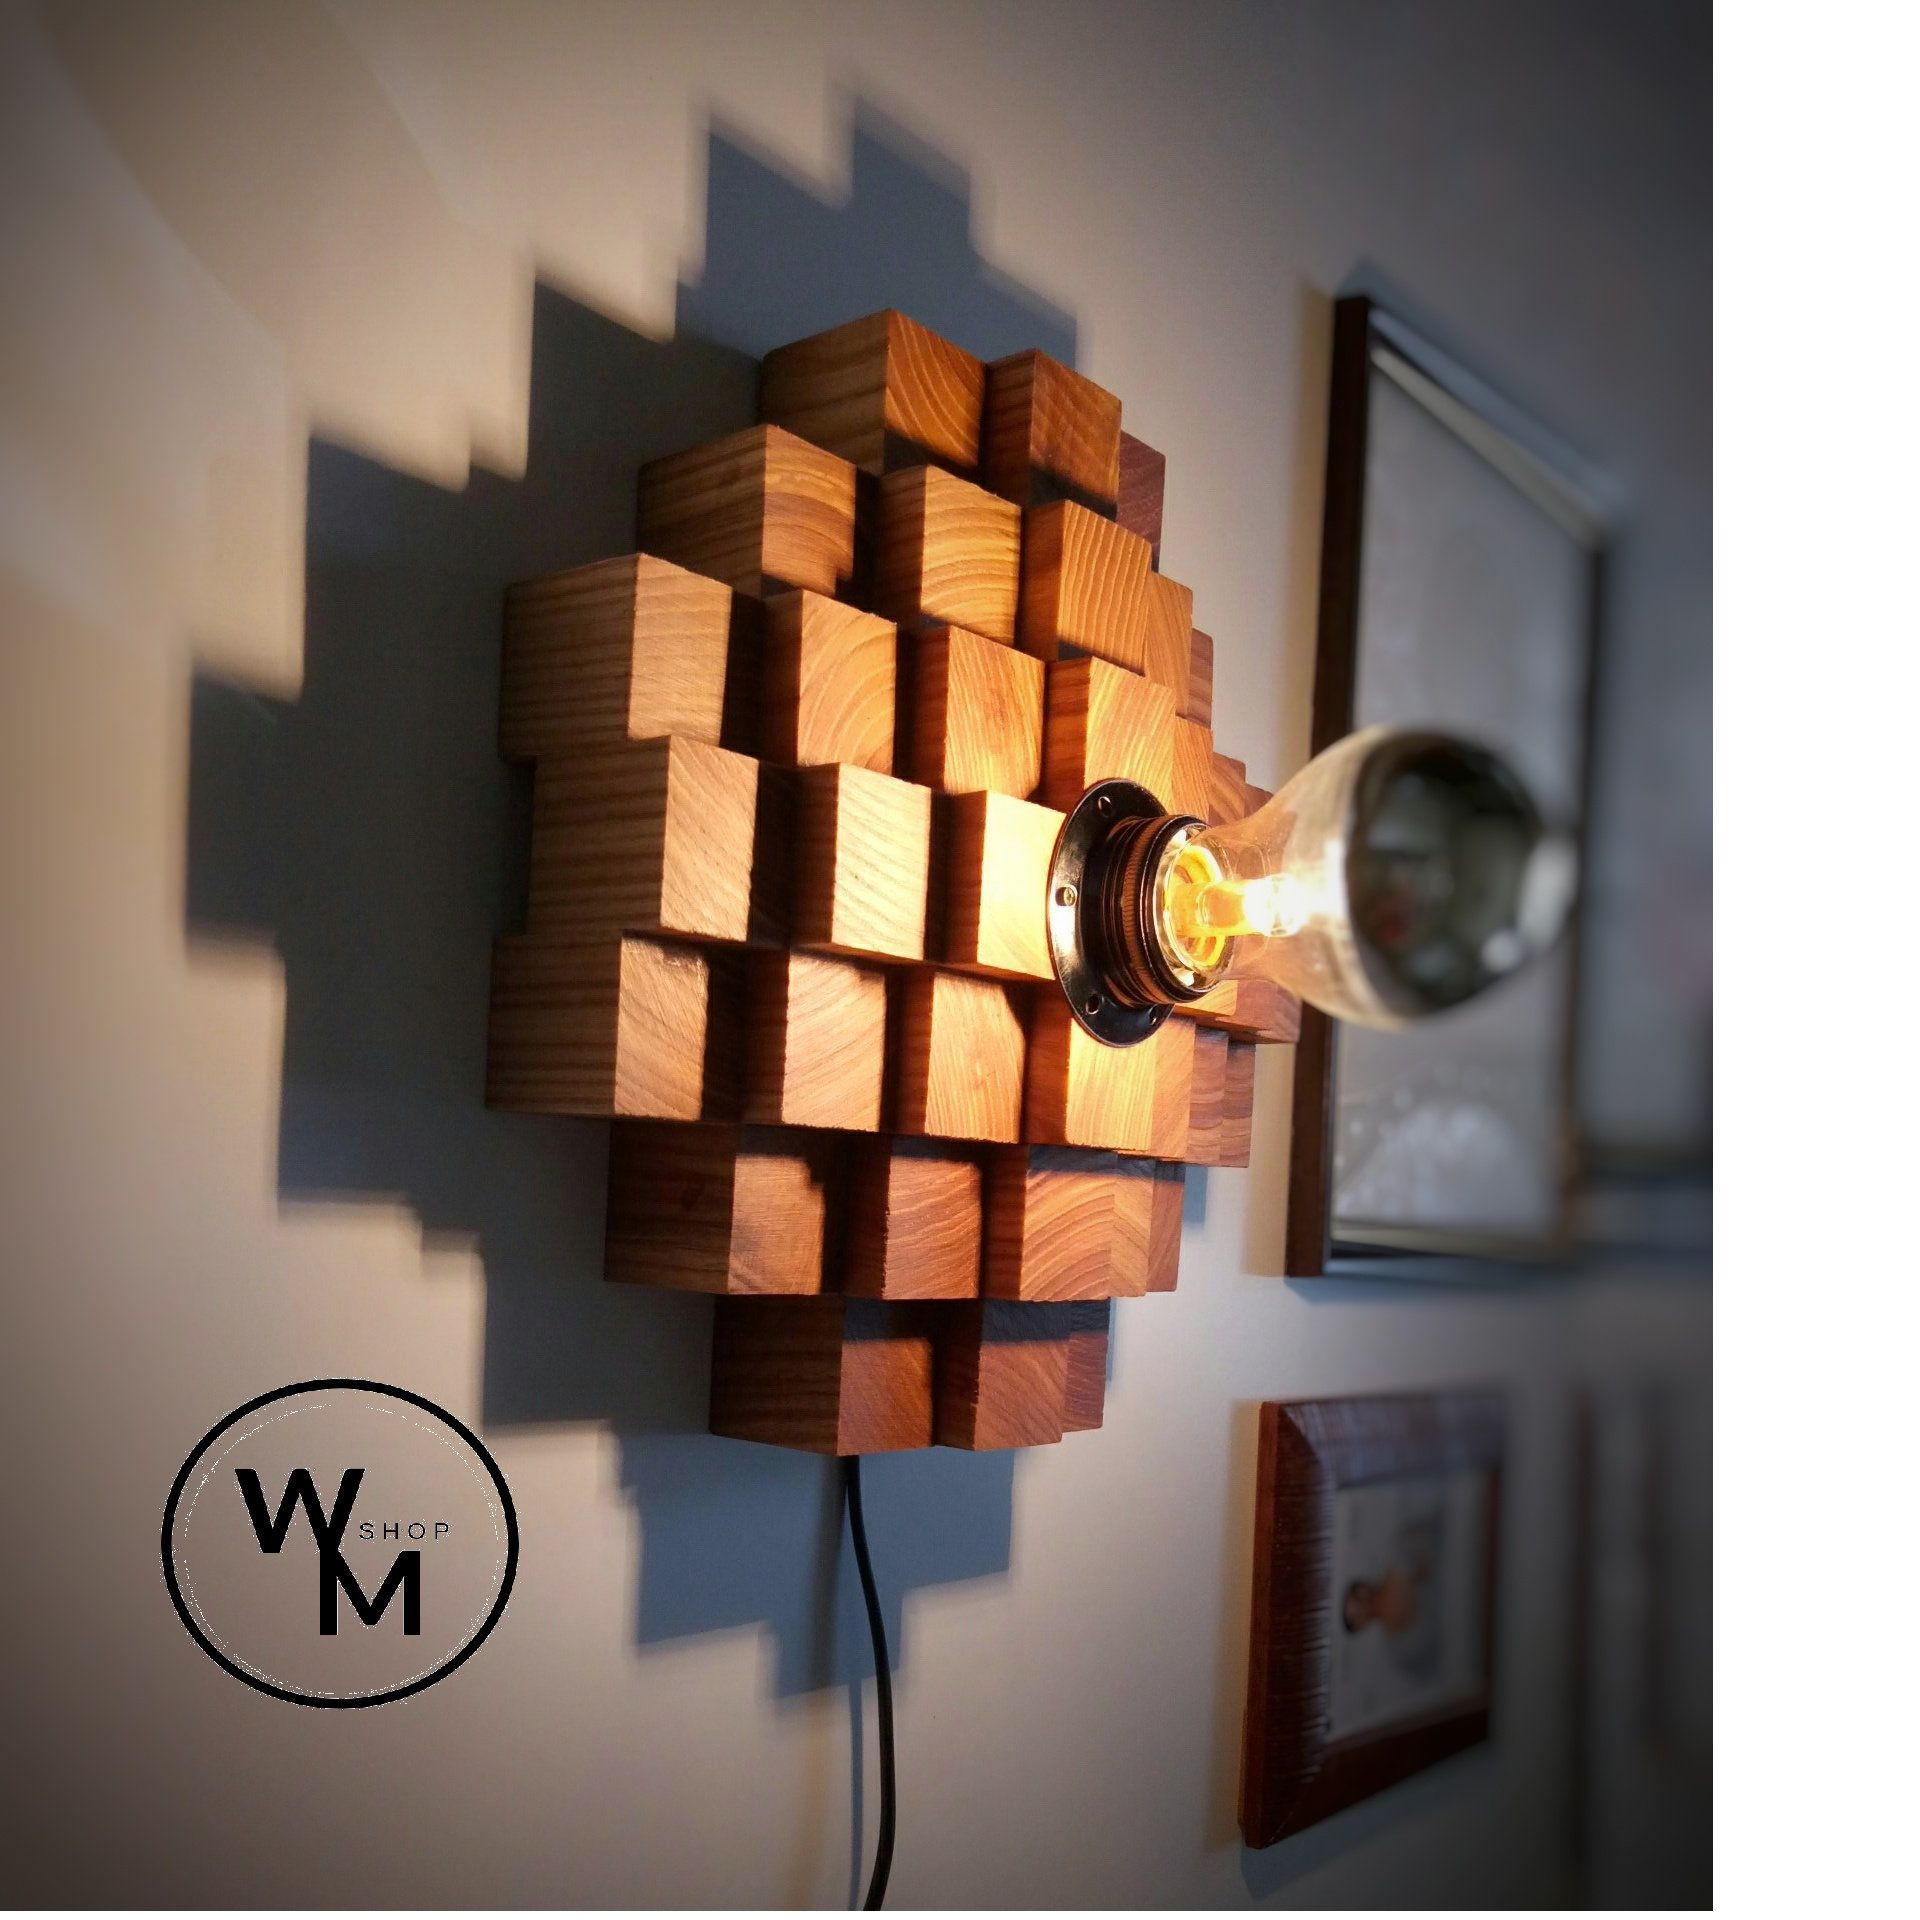 Minimalist Night Light Modern Sconce Wooden Wall Light Plug In Wall Sconce Accent Lamp Modern Wood Lamp Hanging Wall Light Wood Art Creatividad Disenos Creativos Y Disenos De Unas